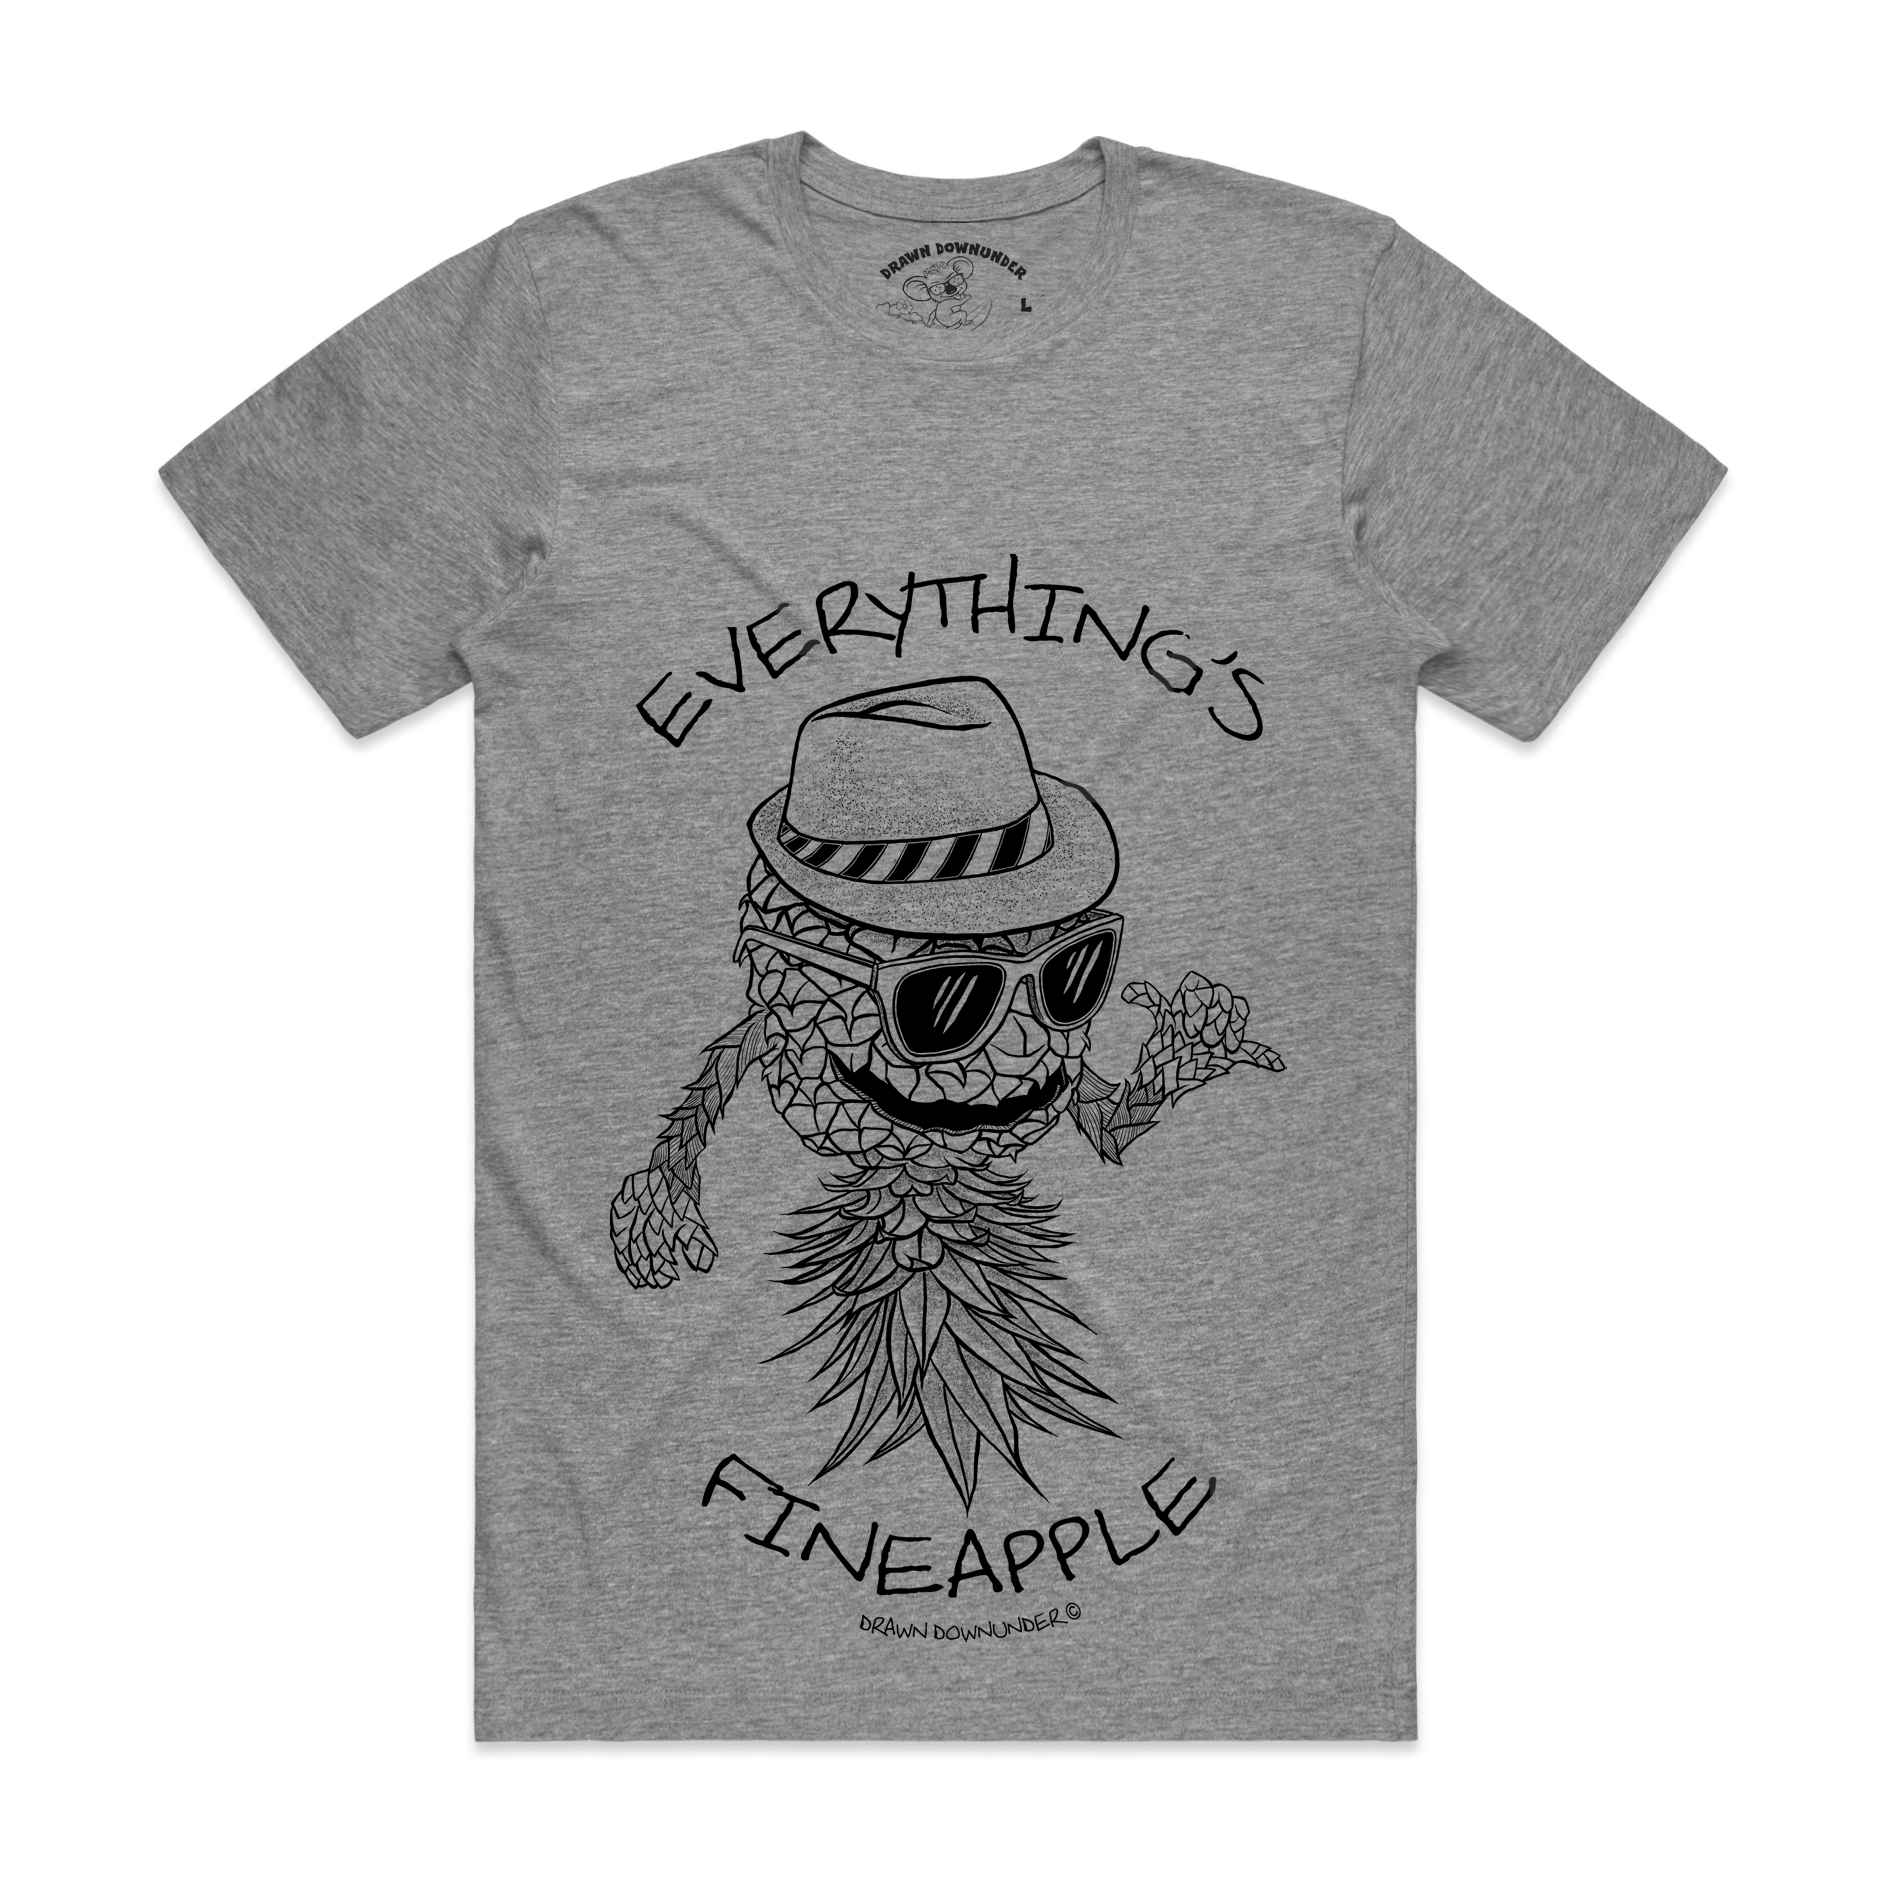 Everything's Fineapple T-Shirt